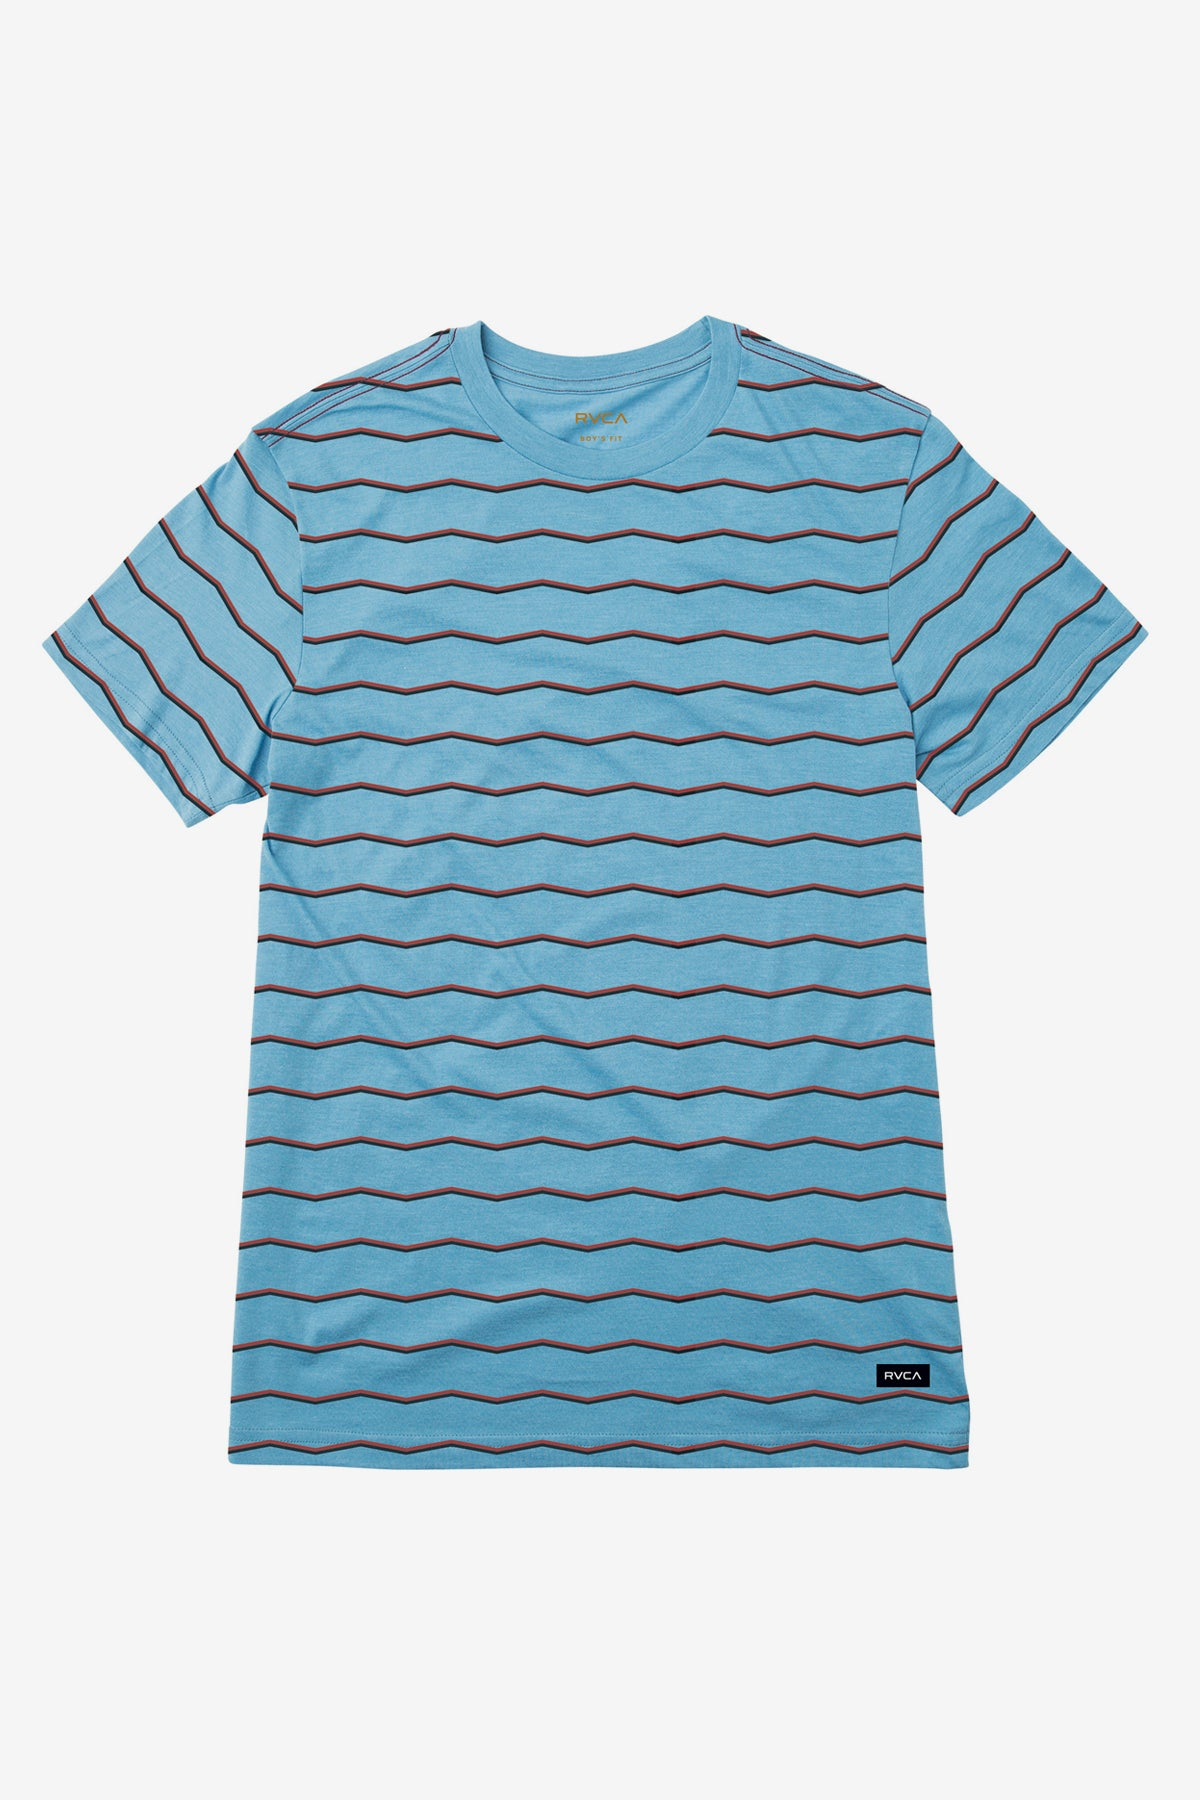 RVCA Boys VA Striped Tee